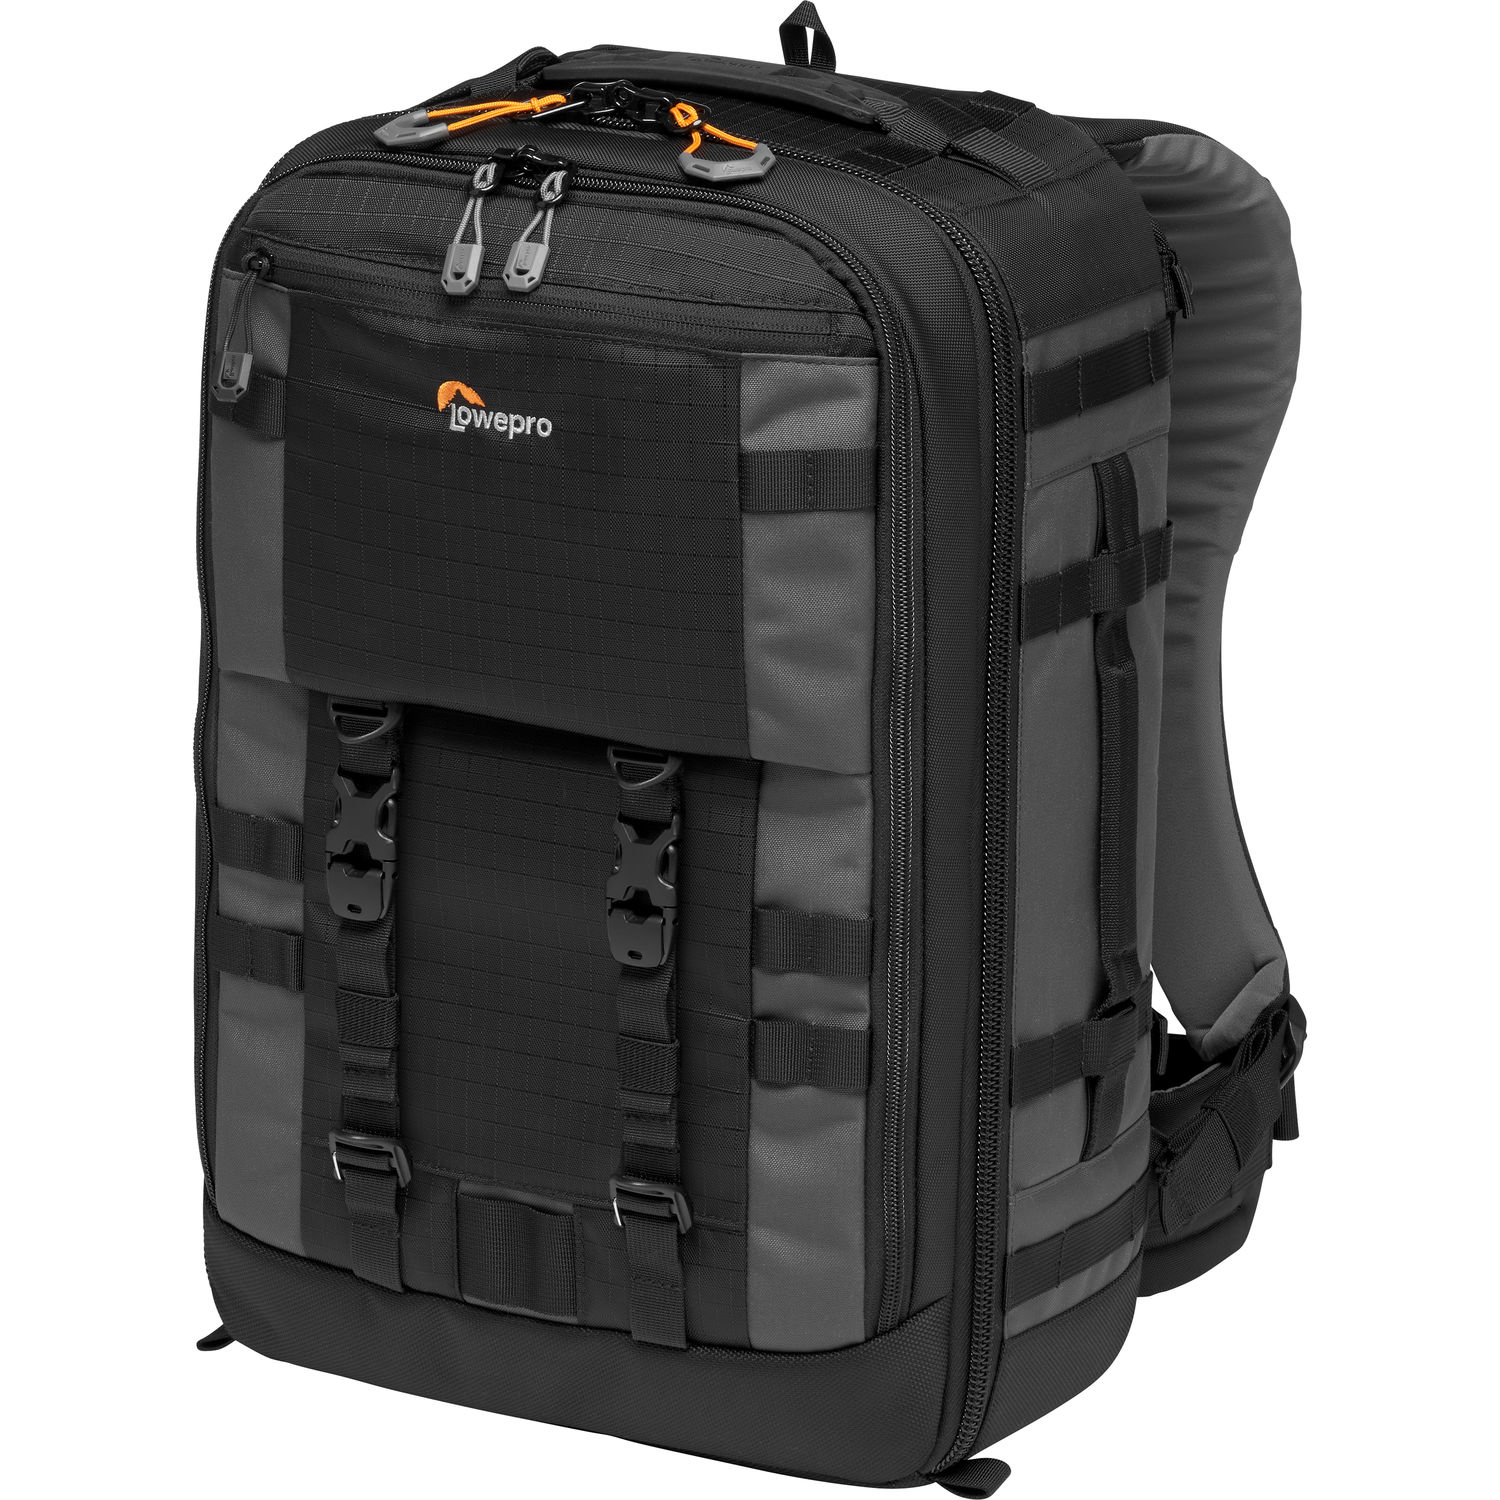 Lowepro Pro Trekker BP350 AW II Backpac